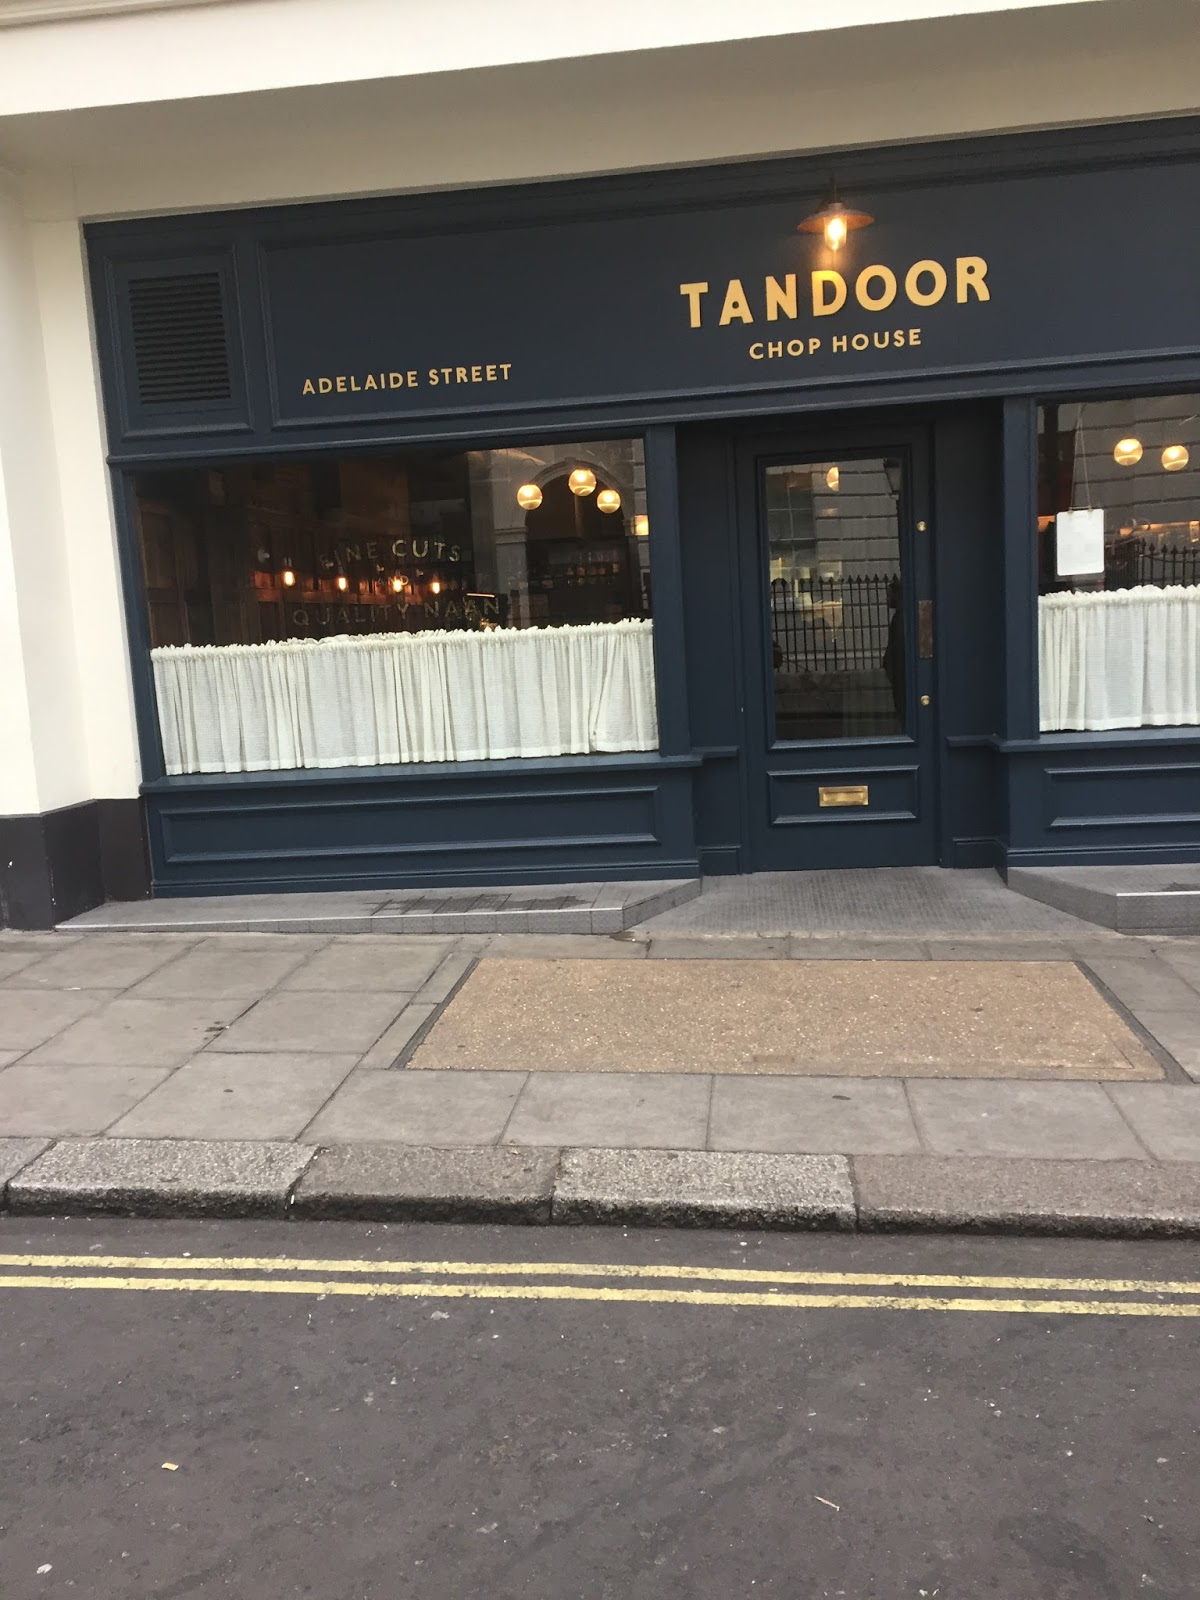 rupEAT: Tandoor Chop Review - a new North Indian British Chop House